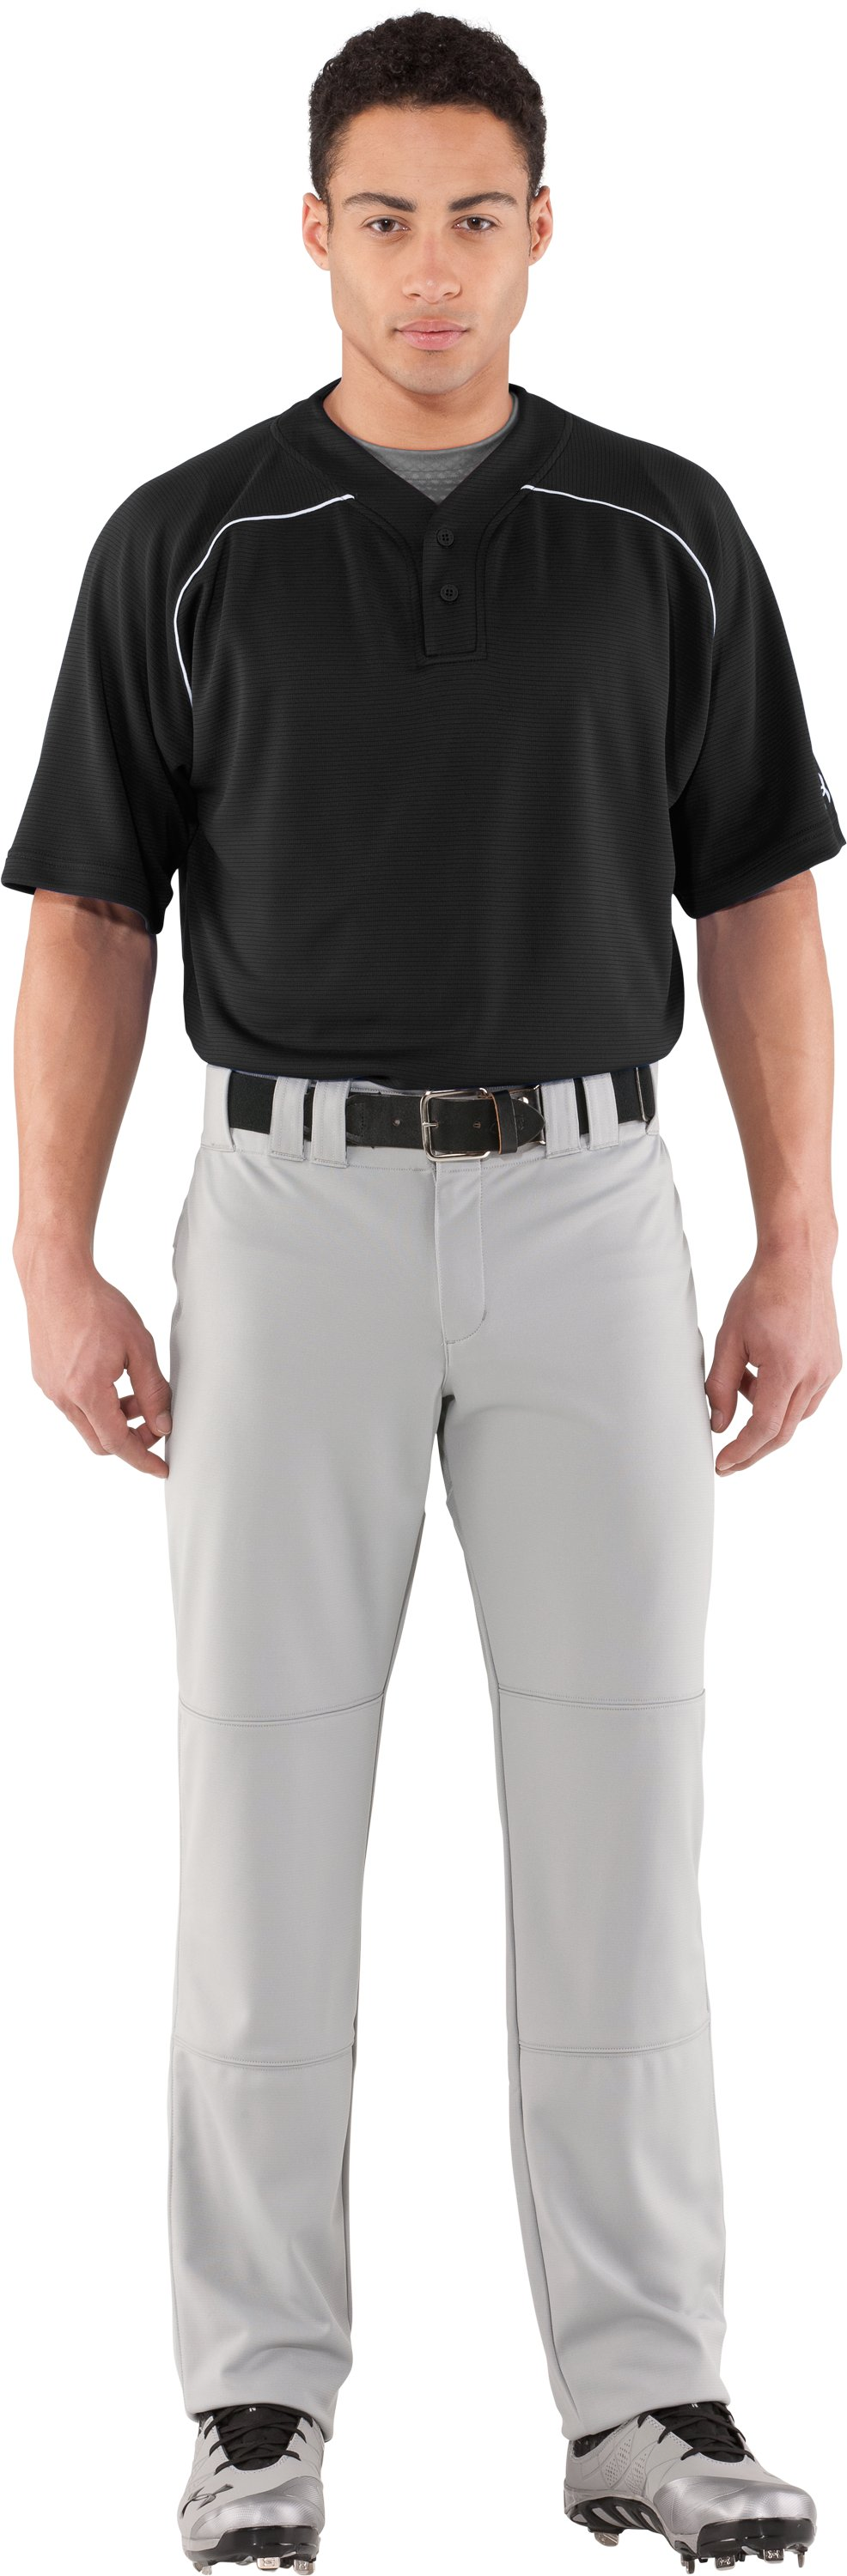 Men's UA Landsdown II Baseball Jersey, Black